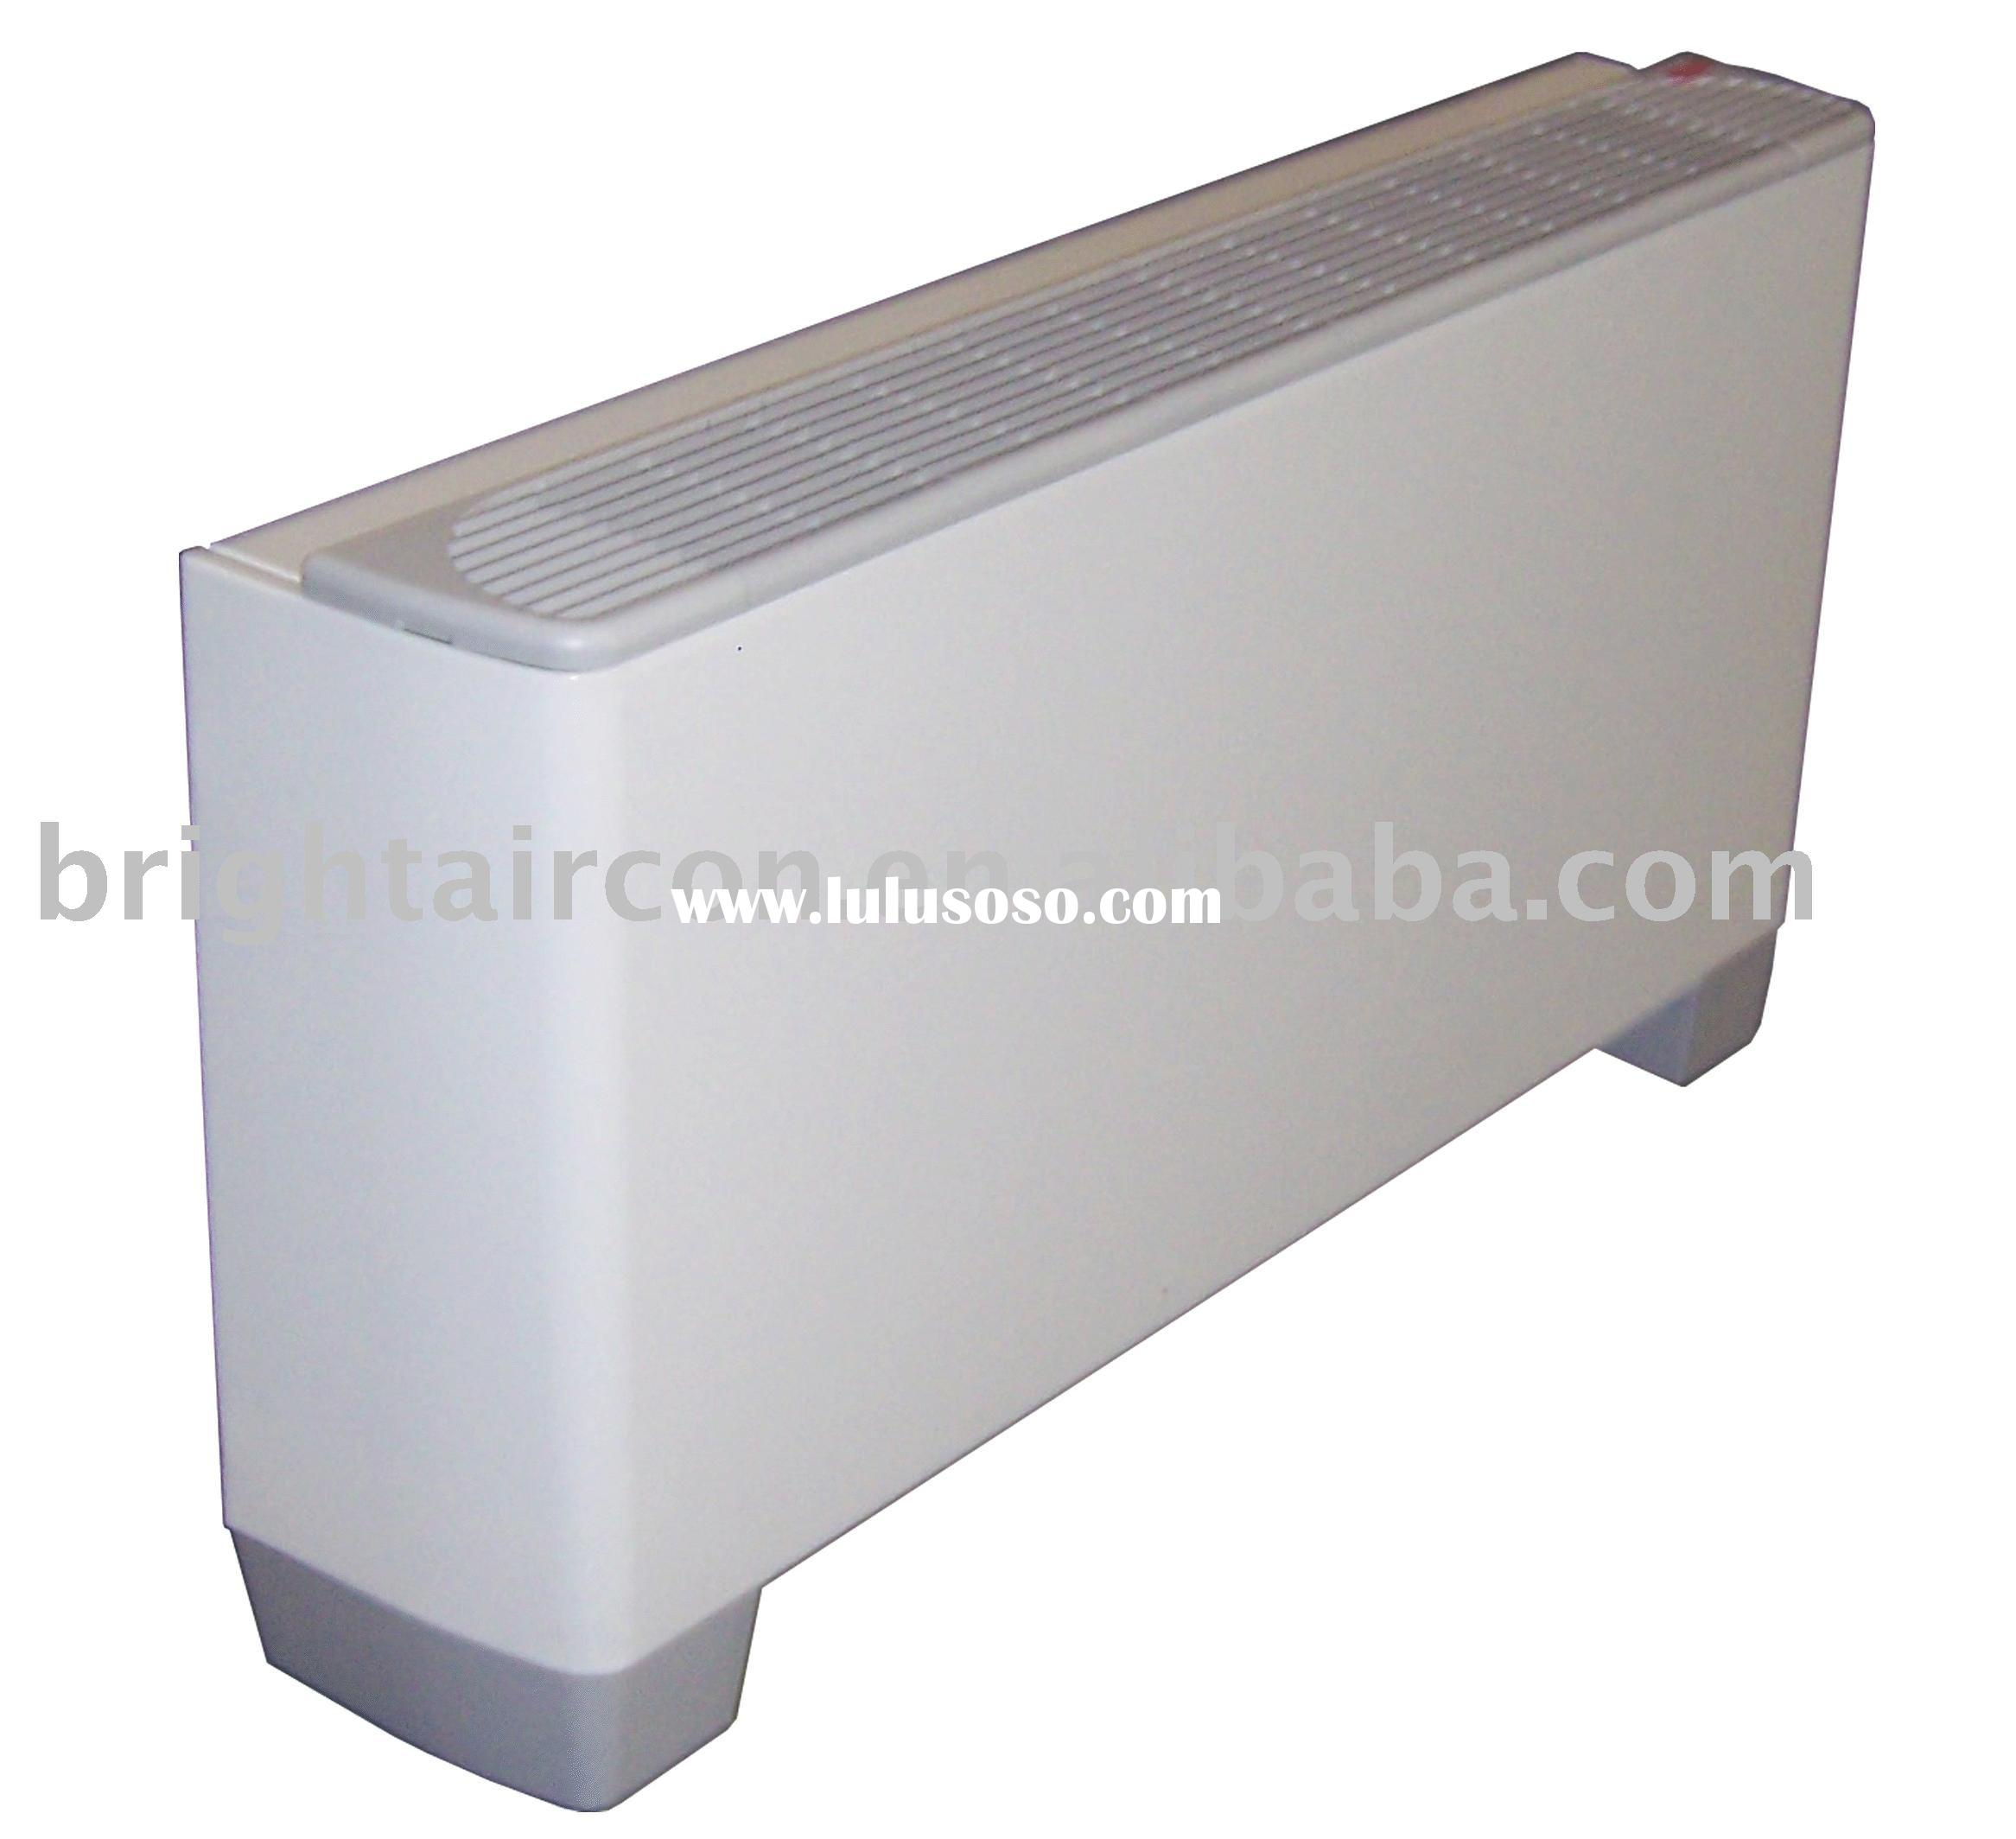 Chilled water Fan coil unit European style